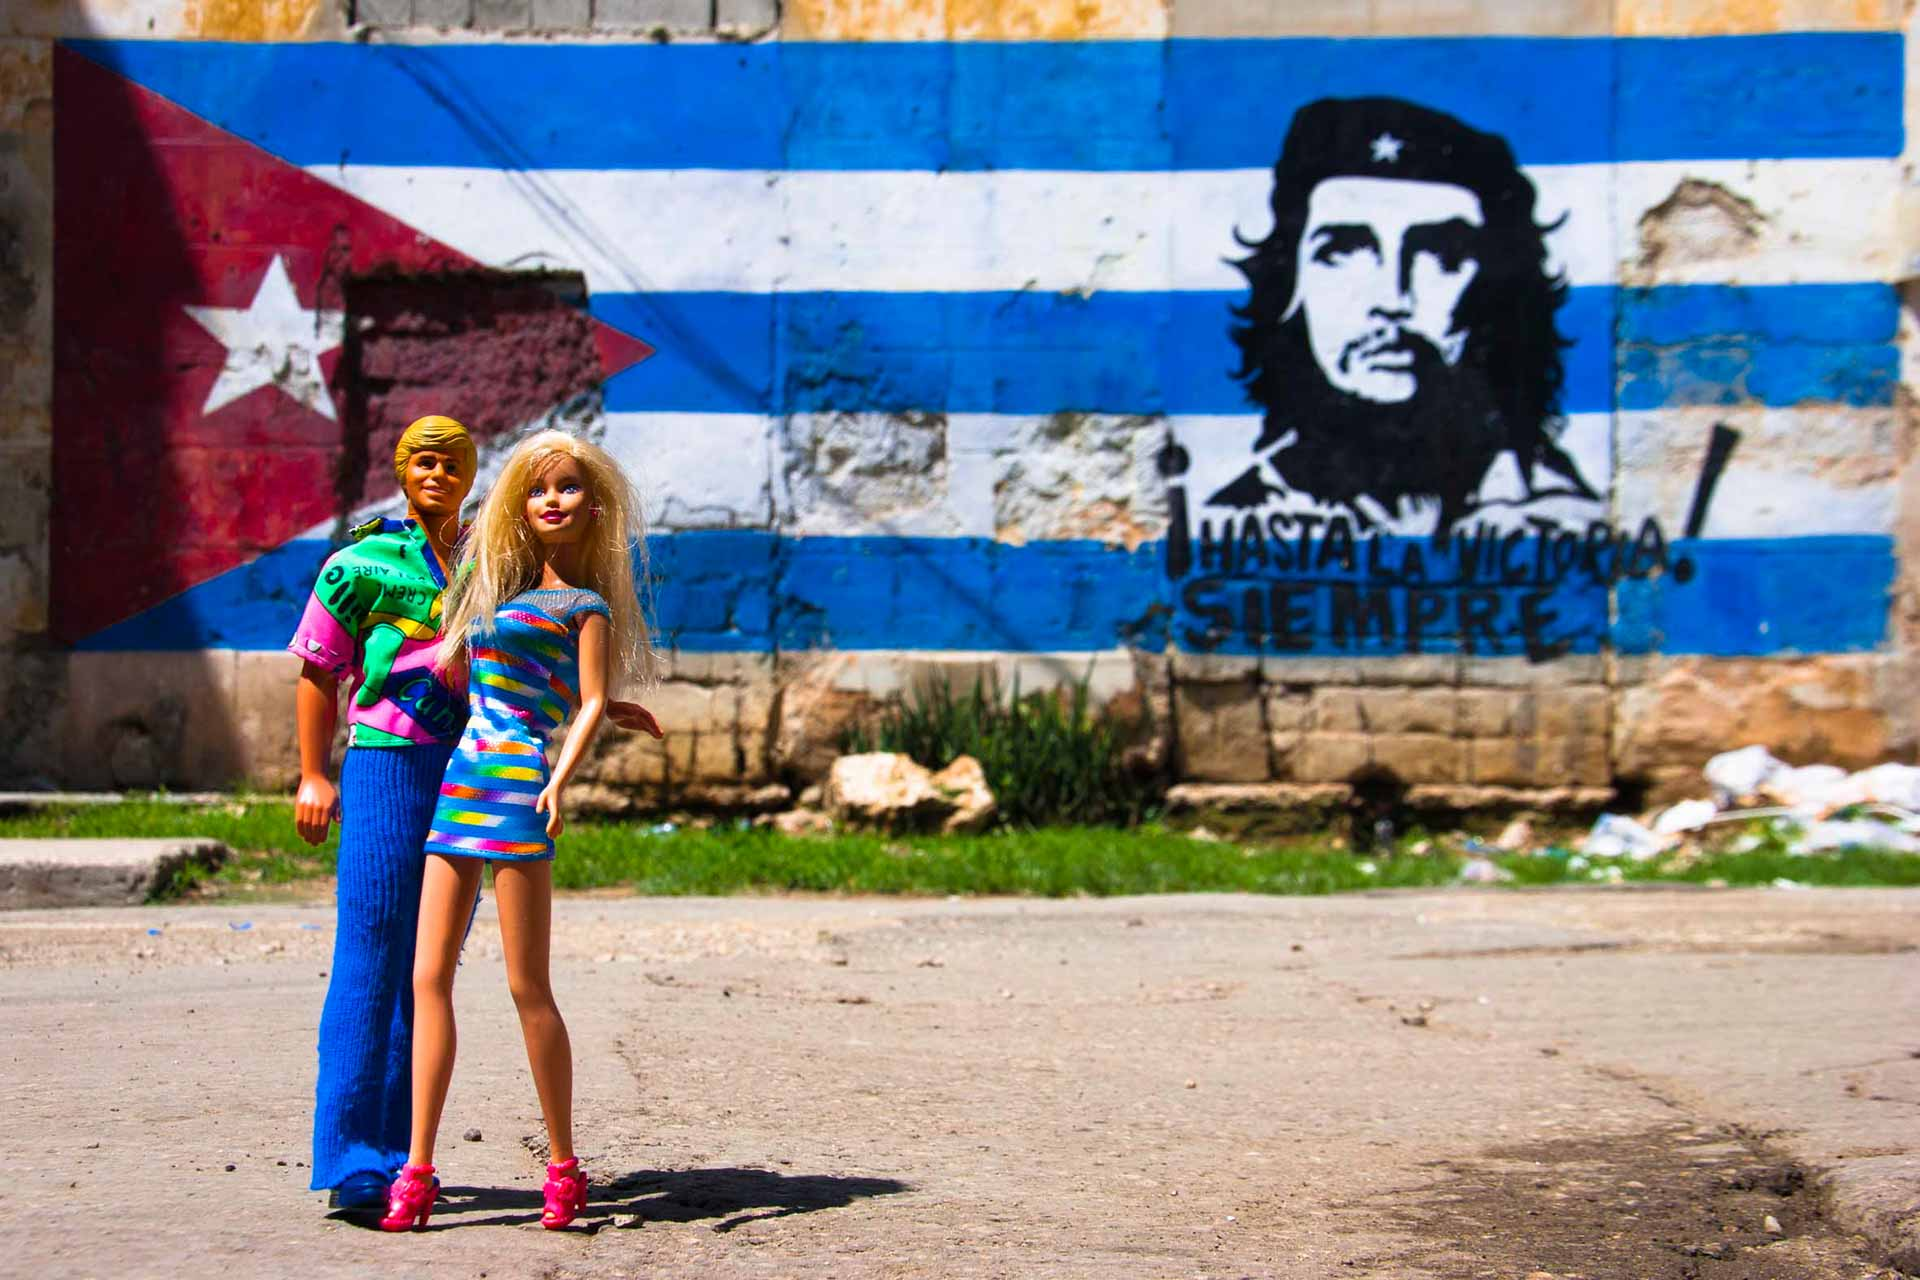 Barbie Around the World Che Guevara Selfie, havana, cuba, pescart, photo blog, travel blog, blog, photo travel blog, enrico pescantini, pescantini